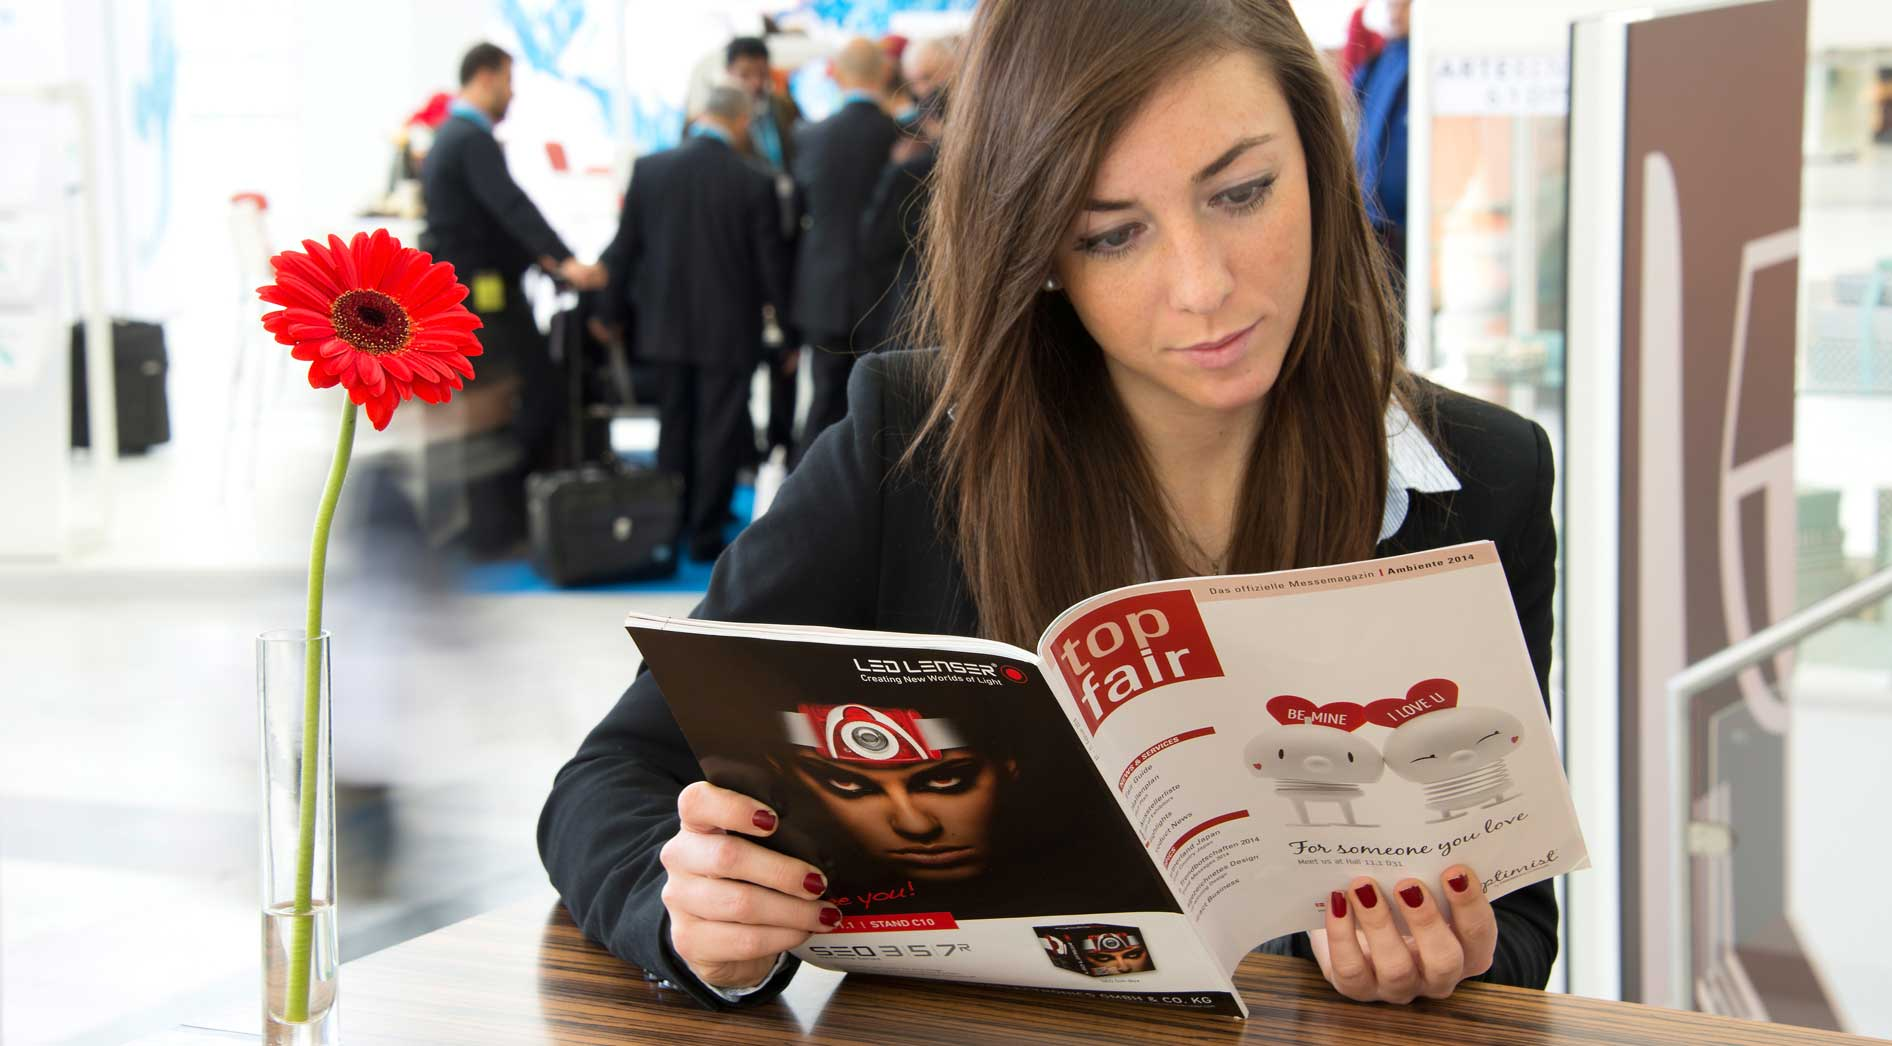 Woman is reading the trade fair magazine top fair